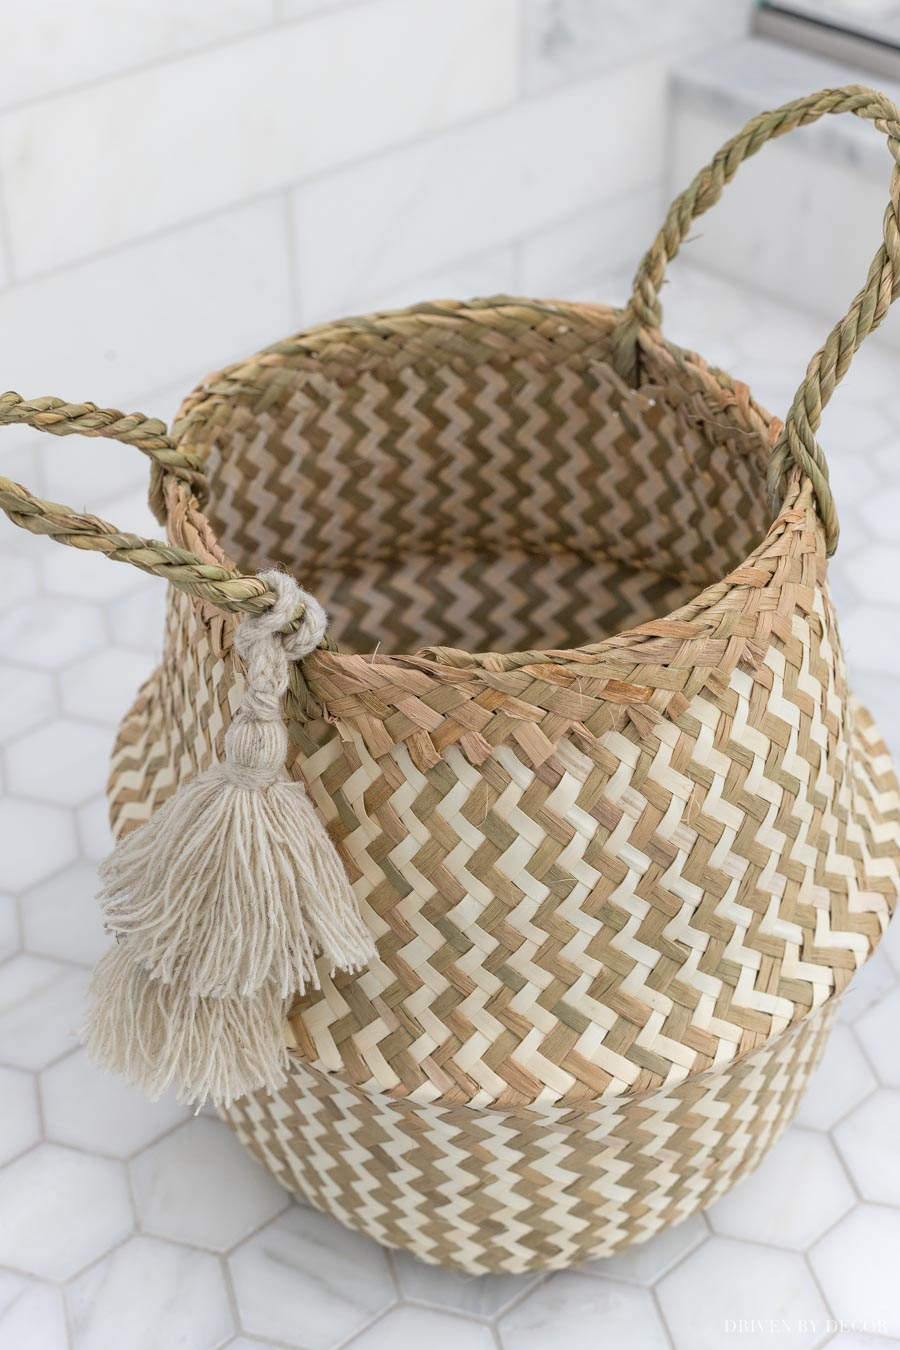 This darling woven basket with tassels is the cutest bathroom decor storage option!